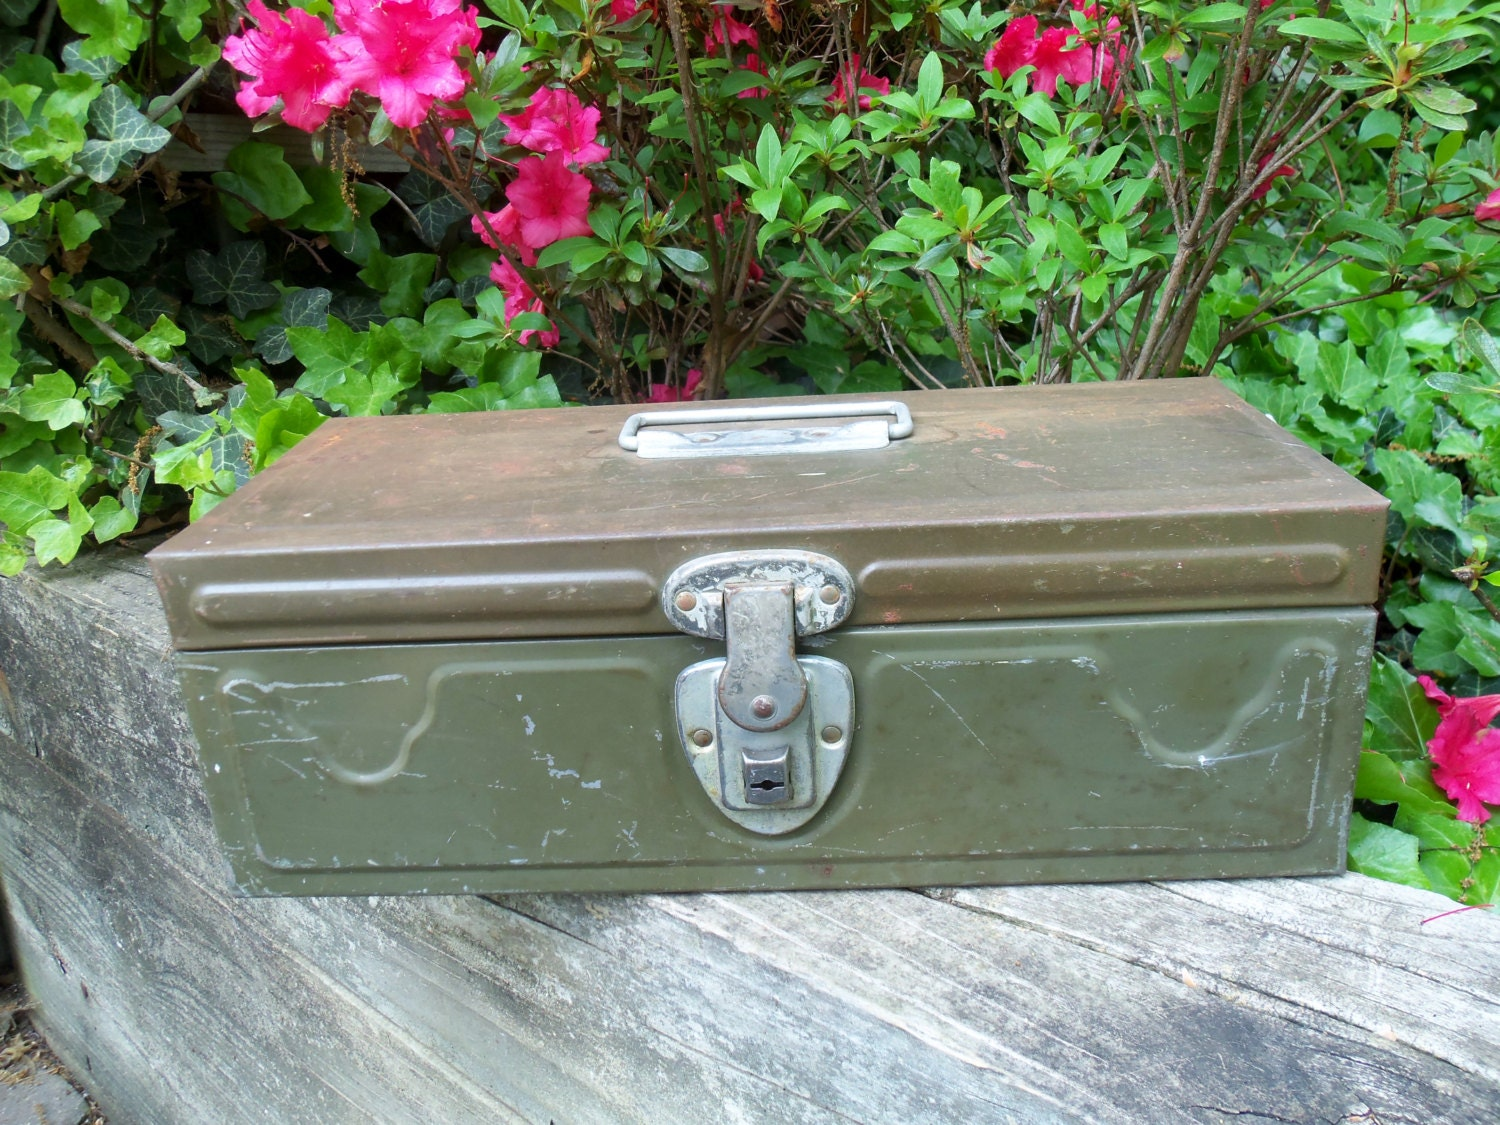 Metal Tackle Box Tool Box with Tray Industrial Mid Century Mad Men Rustic Army Green - TheVintagePorch